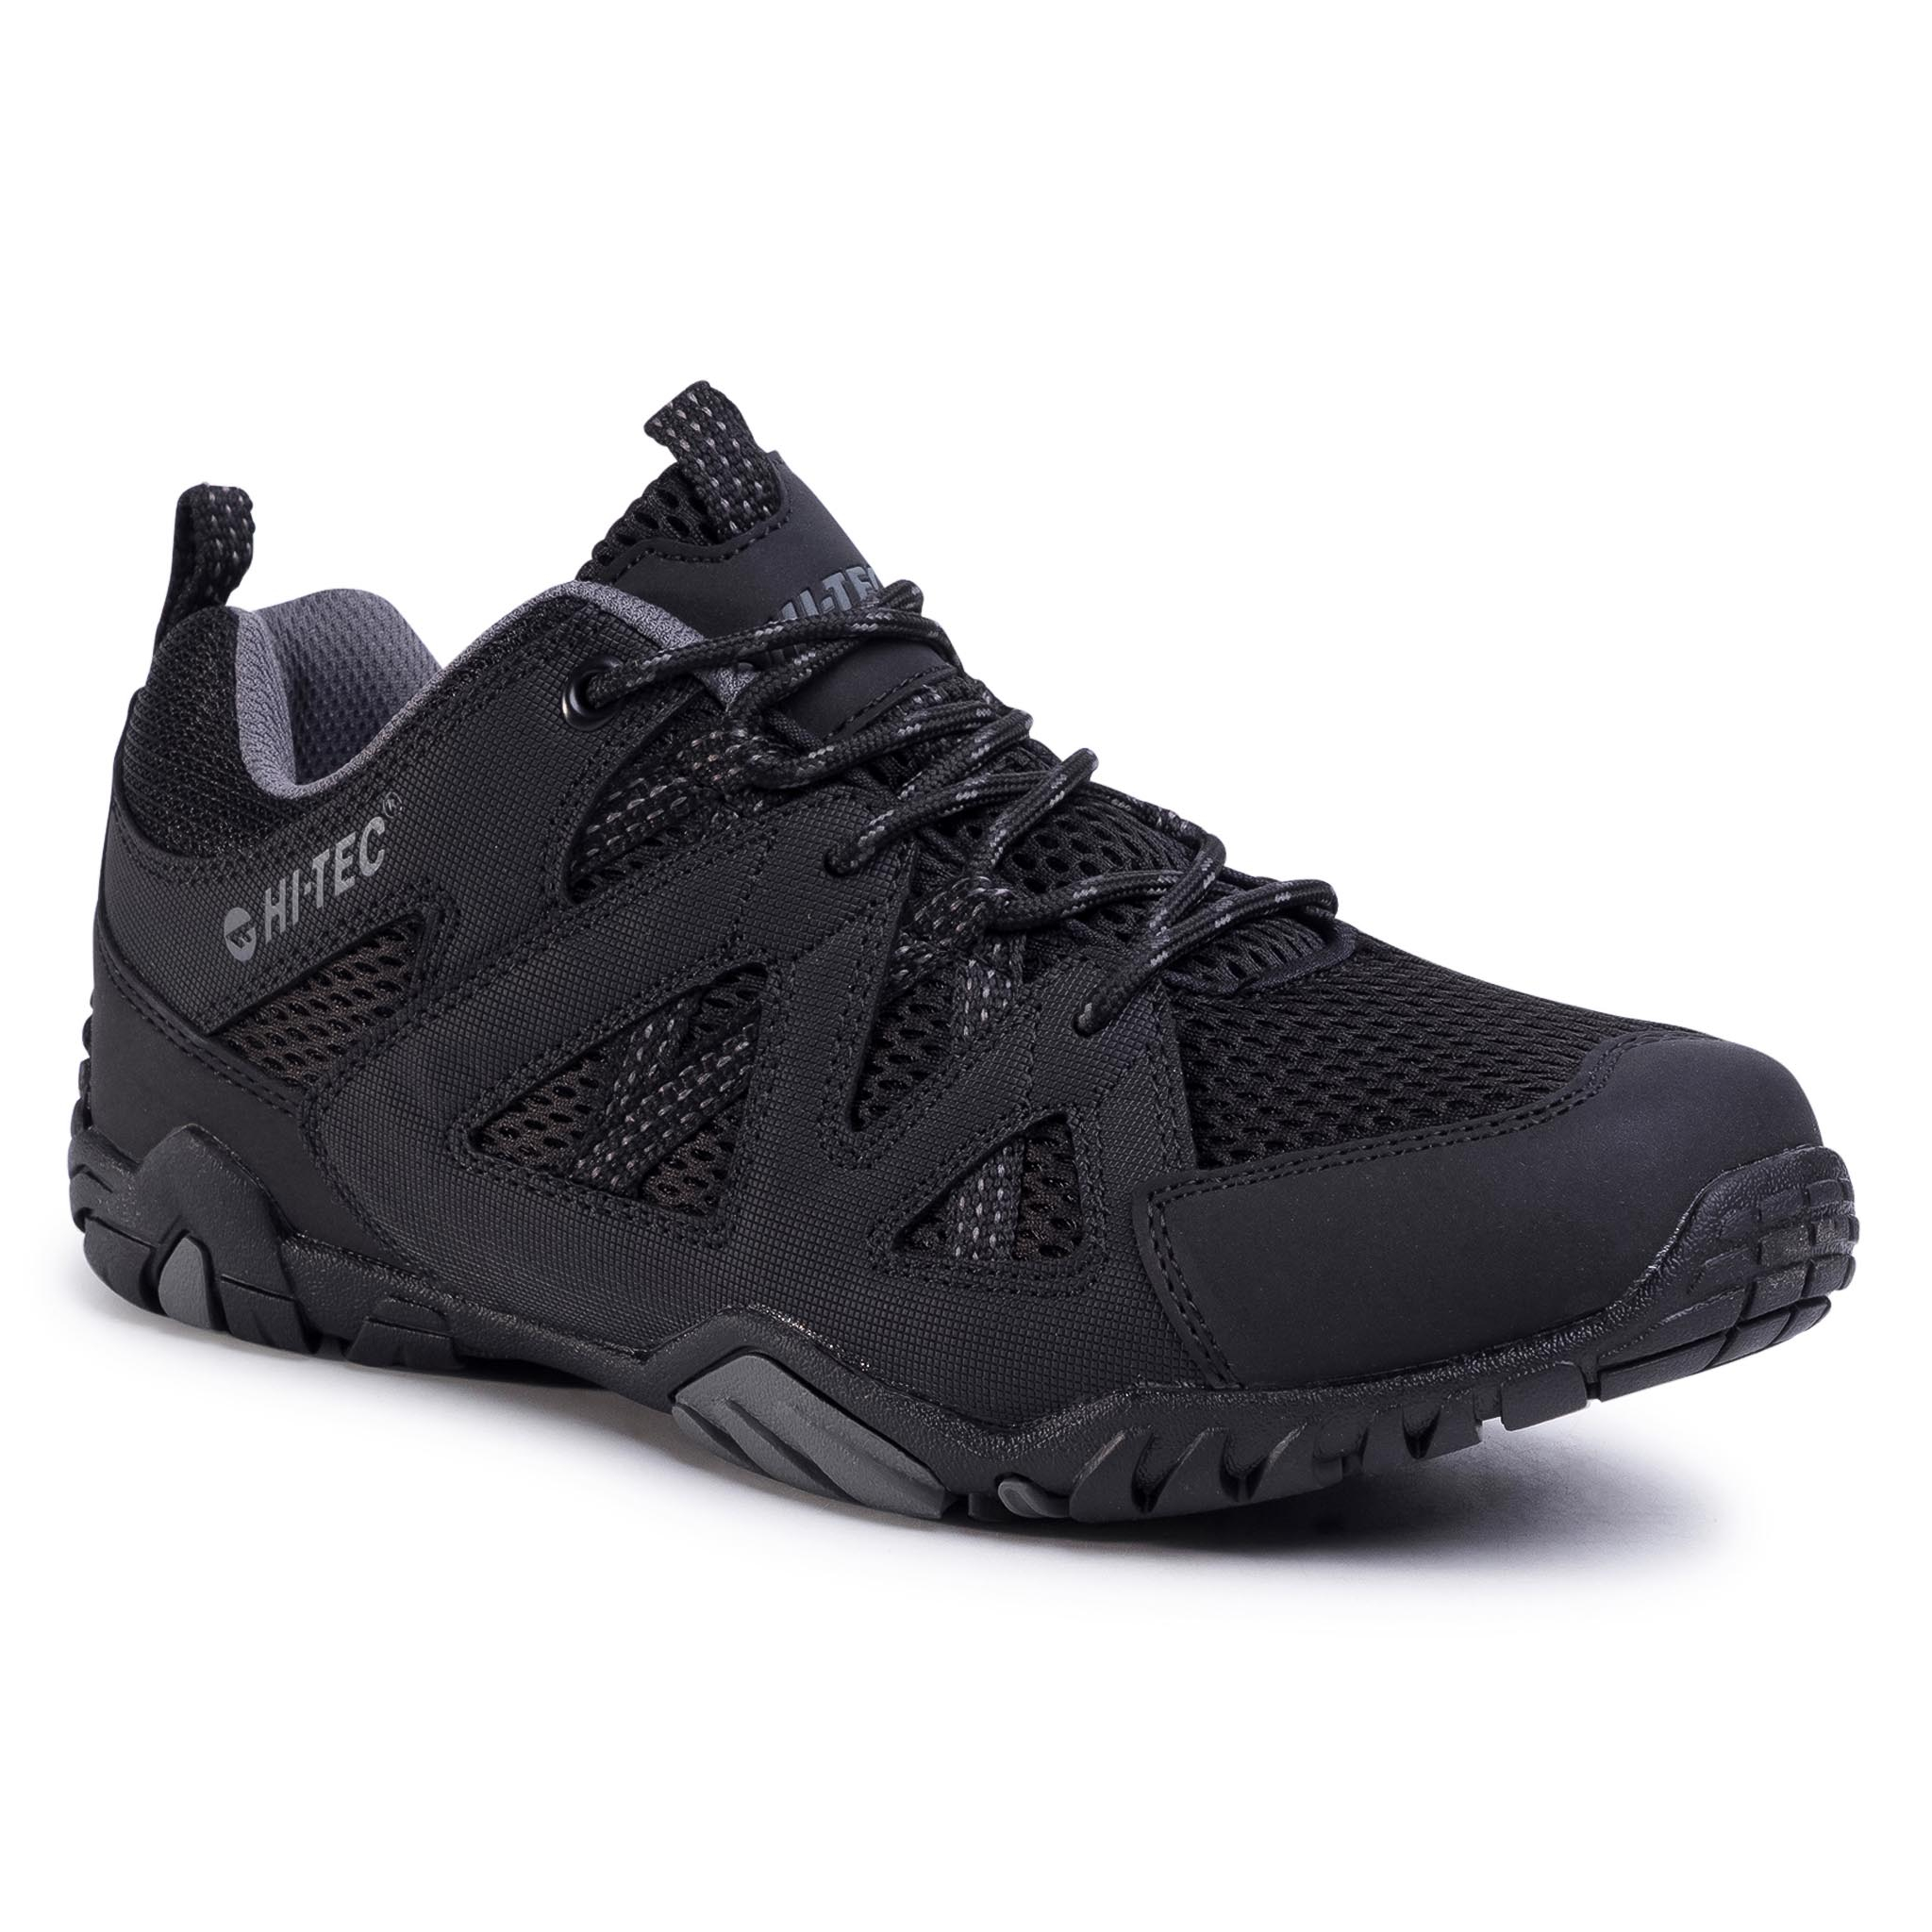 Trekkings Hi-Tec - Rano Avs-Ss20-Ht-01-Q1 Black/Dark Grey imagine epantofi.ro 2021